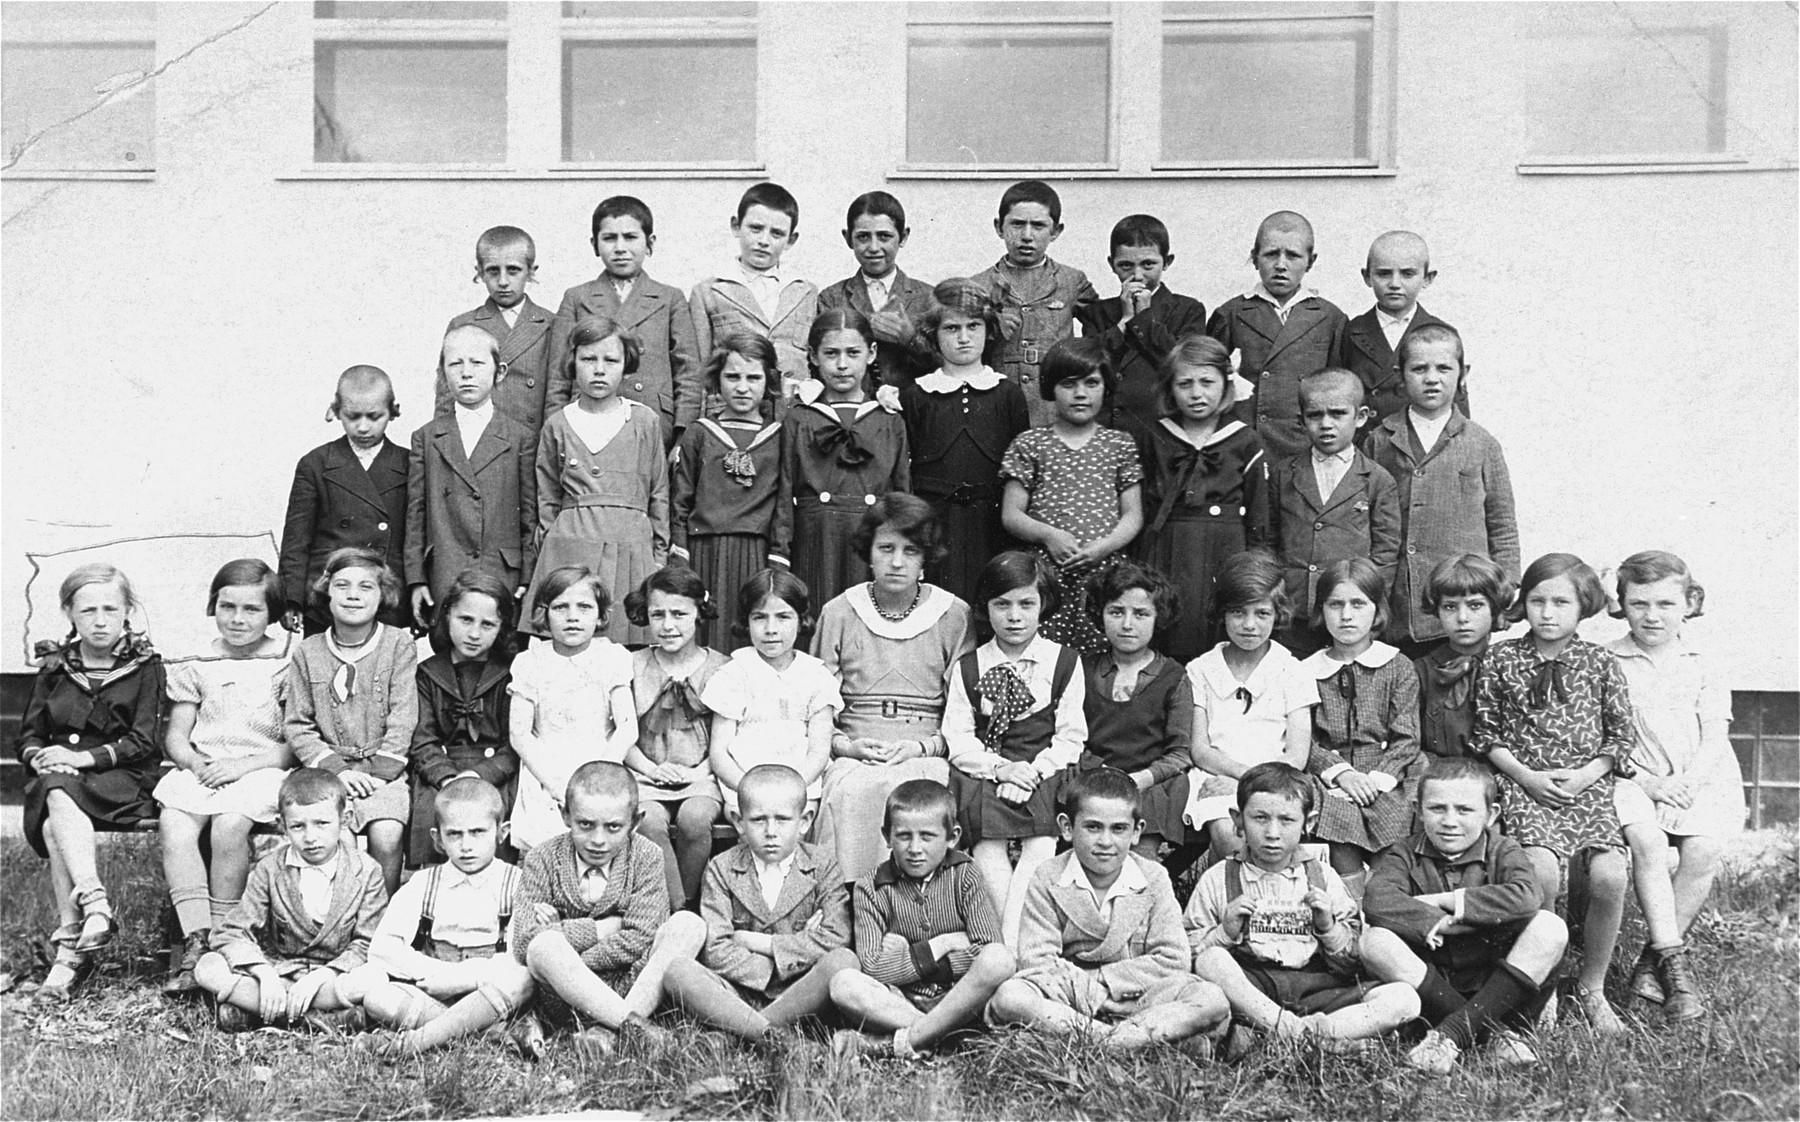 Group portrait of second grade students and teachers at a Czech Jewish school in Vinogradov, Ukraine.    Among those pictured are Dwajri (Deborah) Rottenstein (second row, first from the left), and her cousin Gitta Busch (next to her).  Dwajri is the sister of donor Edith Rottenstein Gross.  Dwajri perished at the Stutthof concentration camp.  Gitta was shot and killed by a German soldier in 1945.